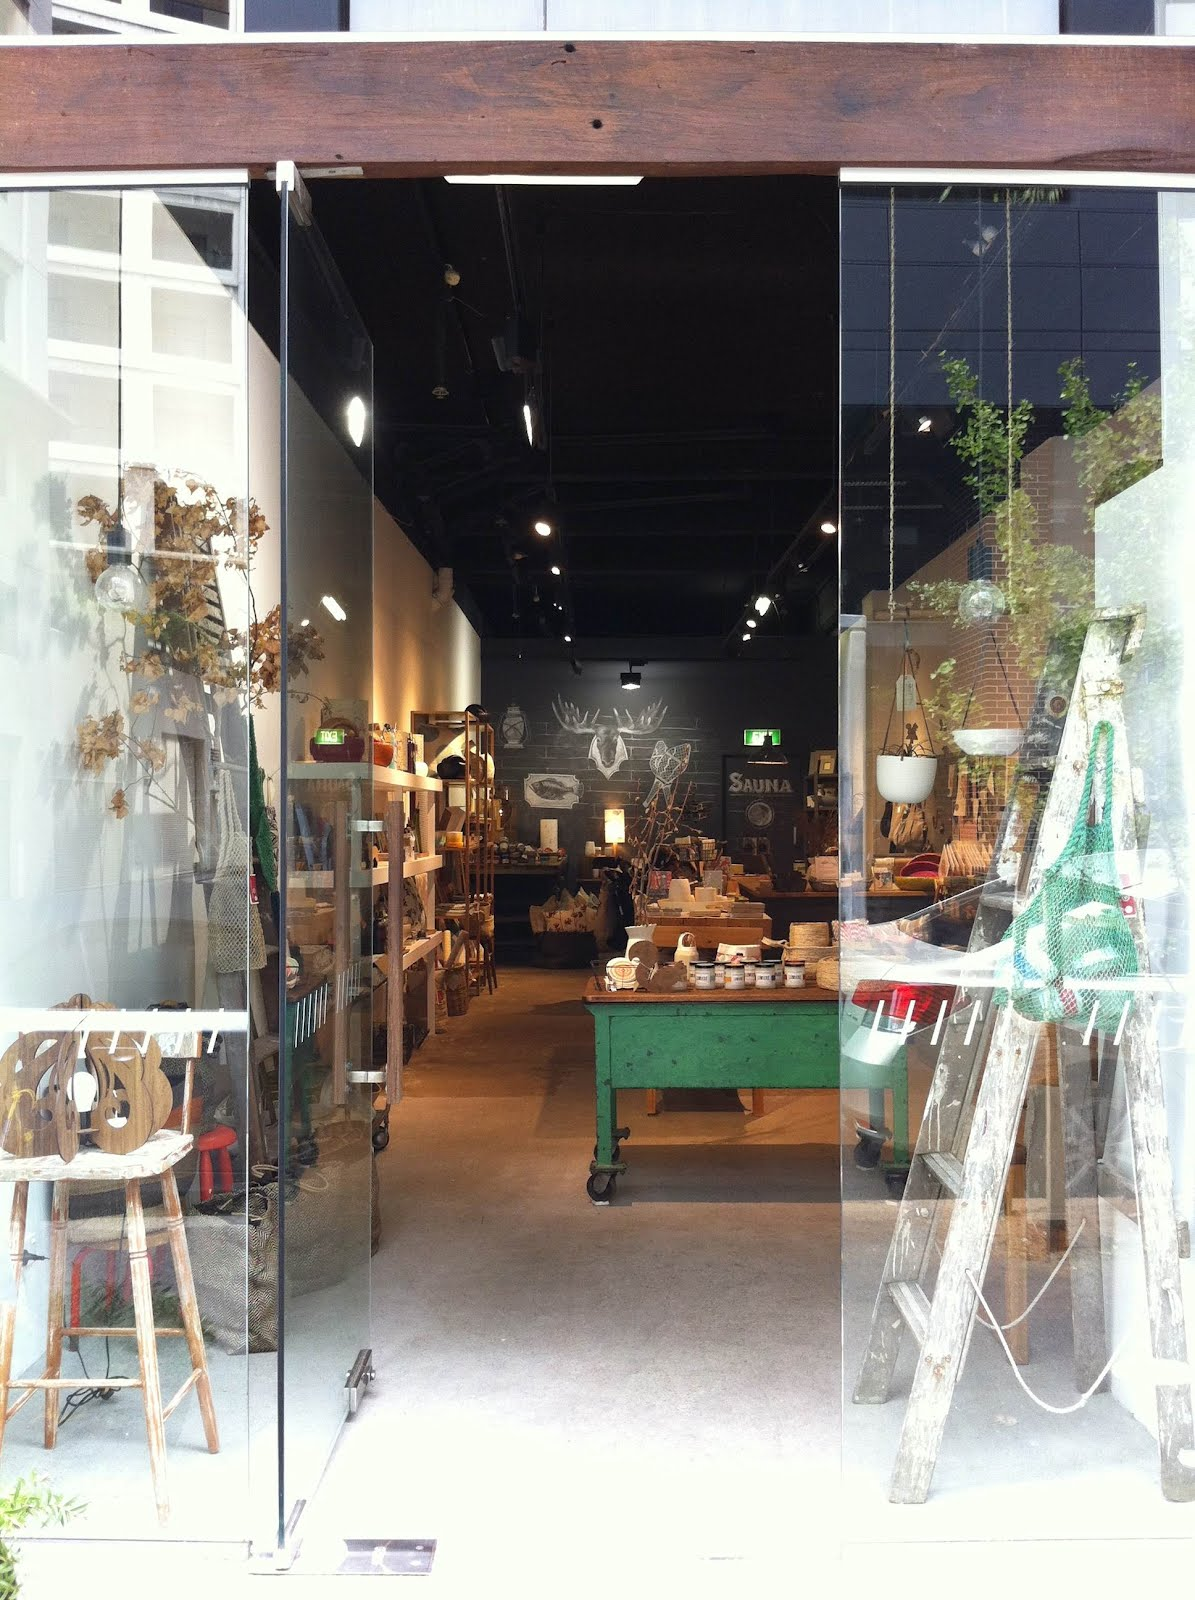 Daily Imprint Interviews On Creative Living Shop Owner